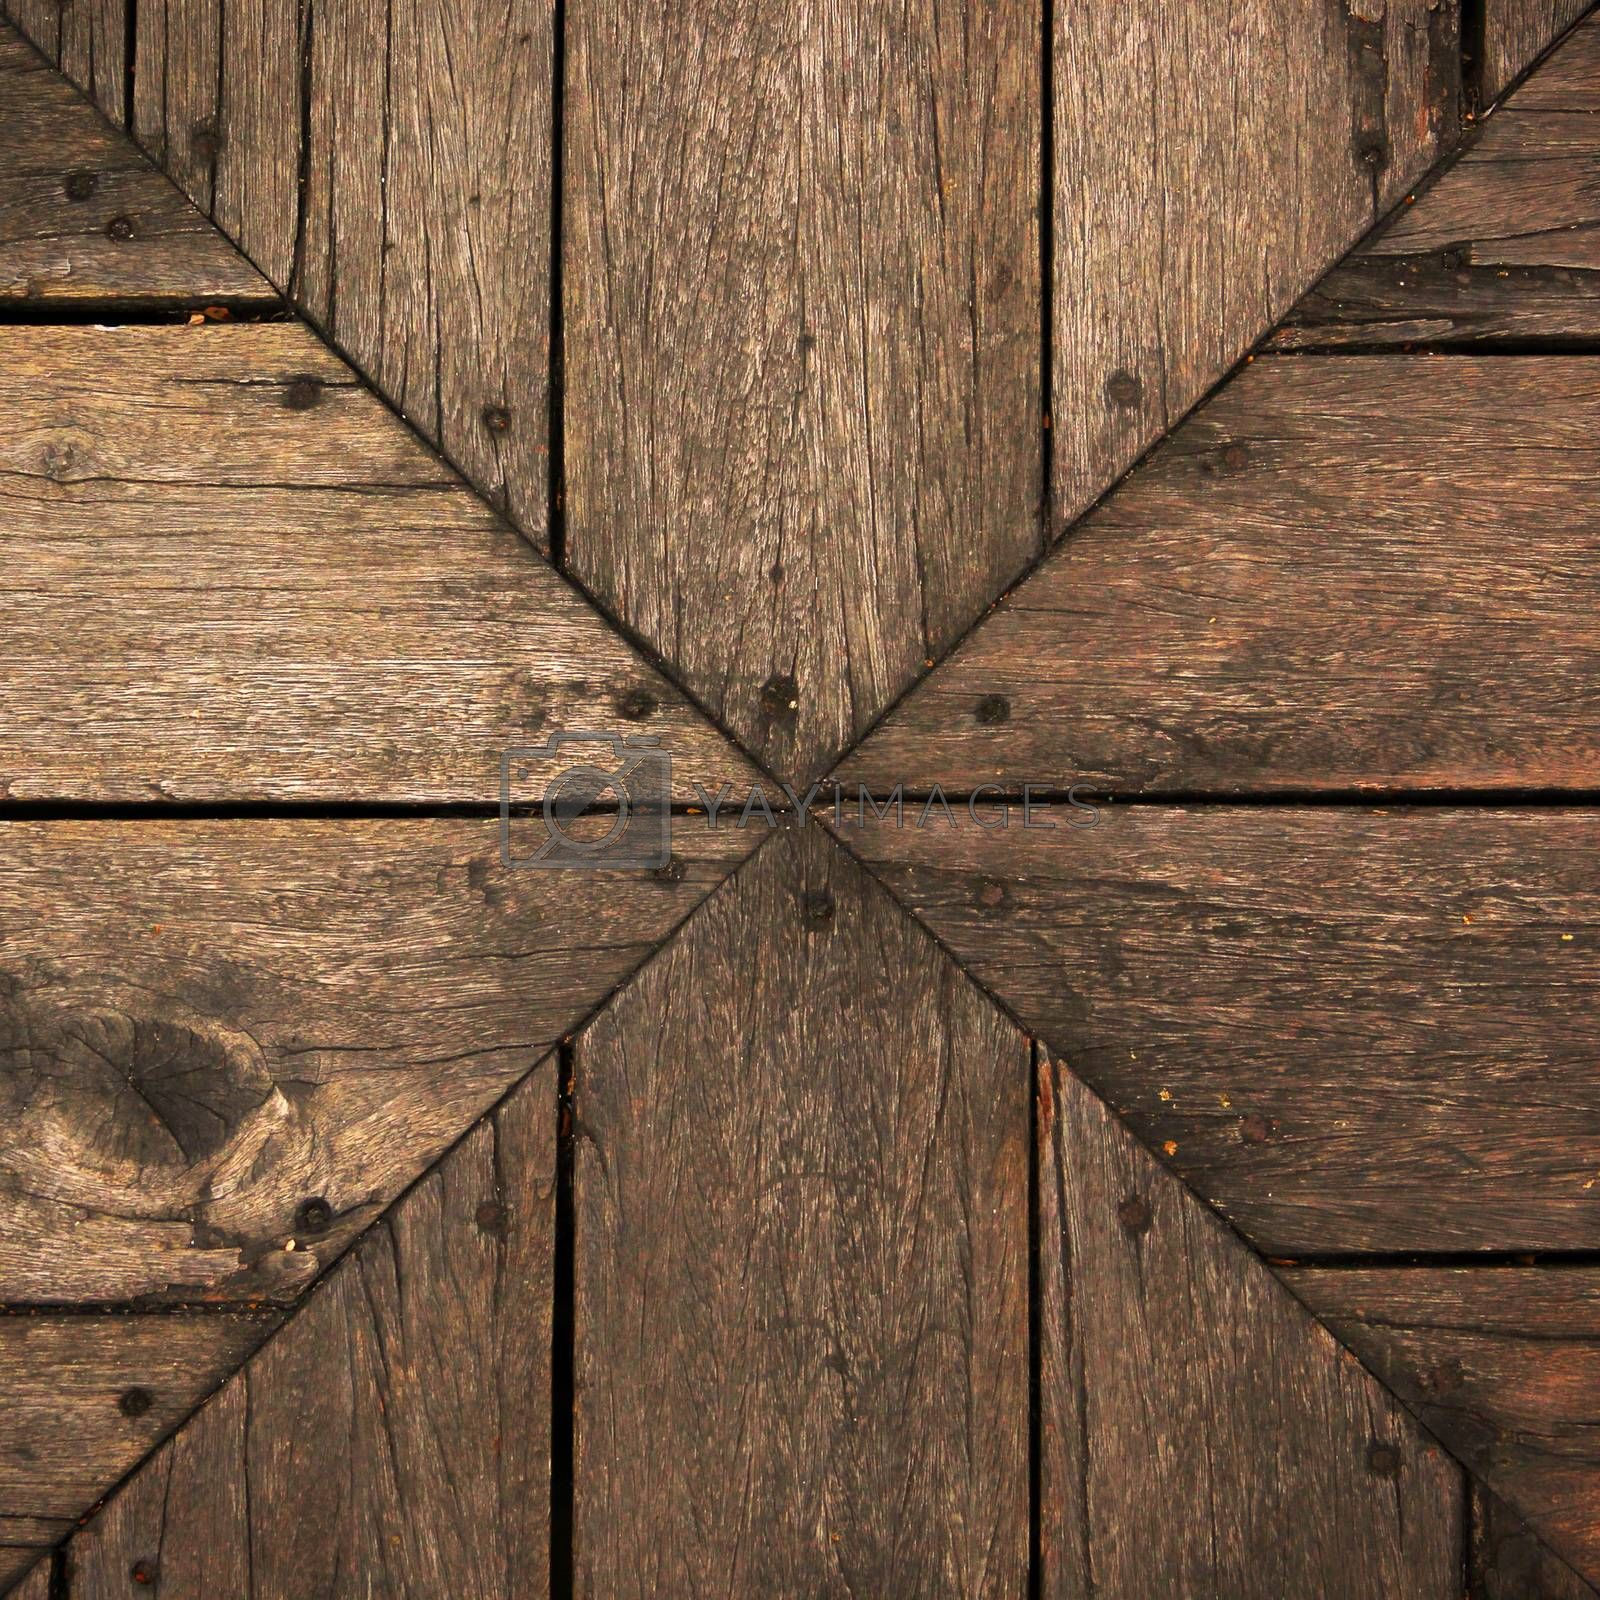 Background wood brown by liewluck